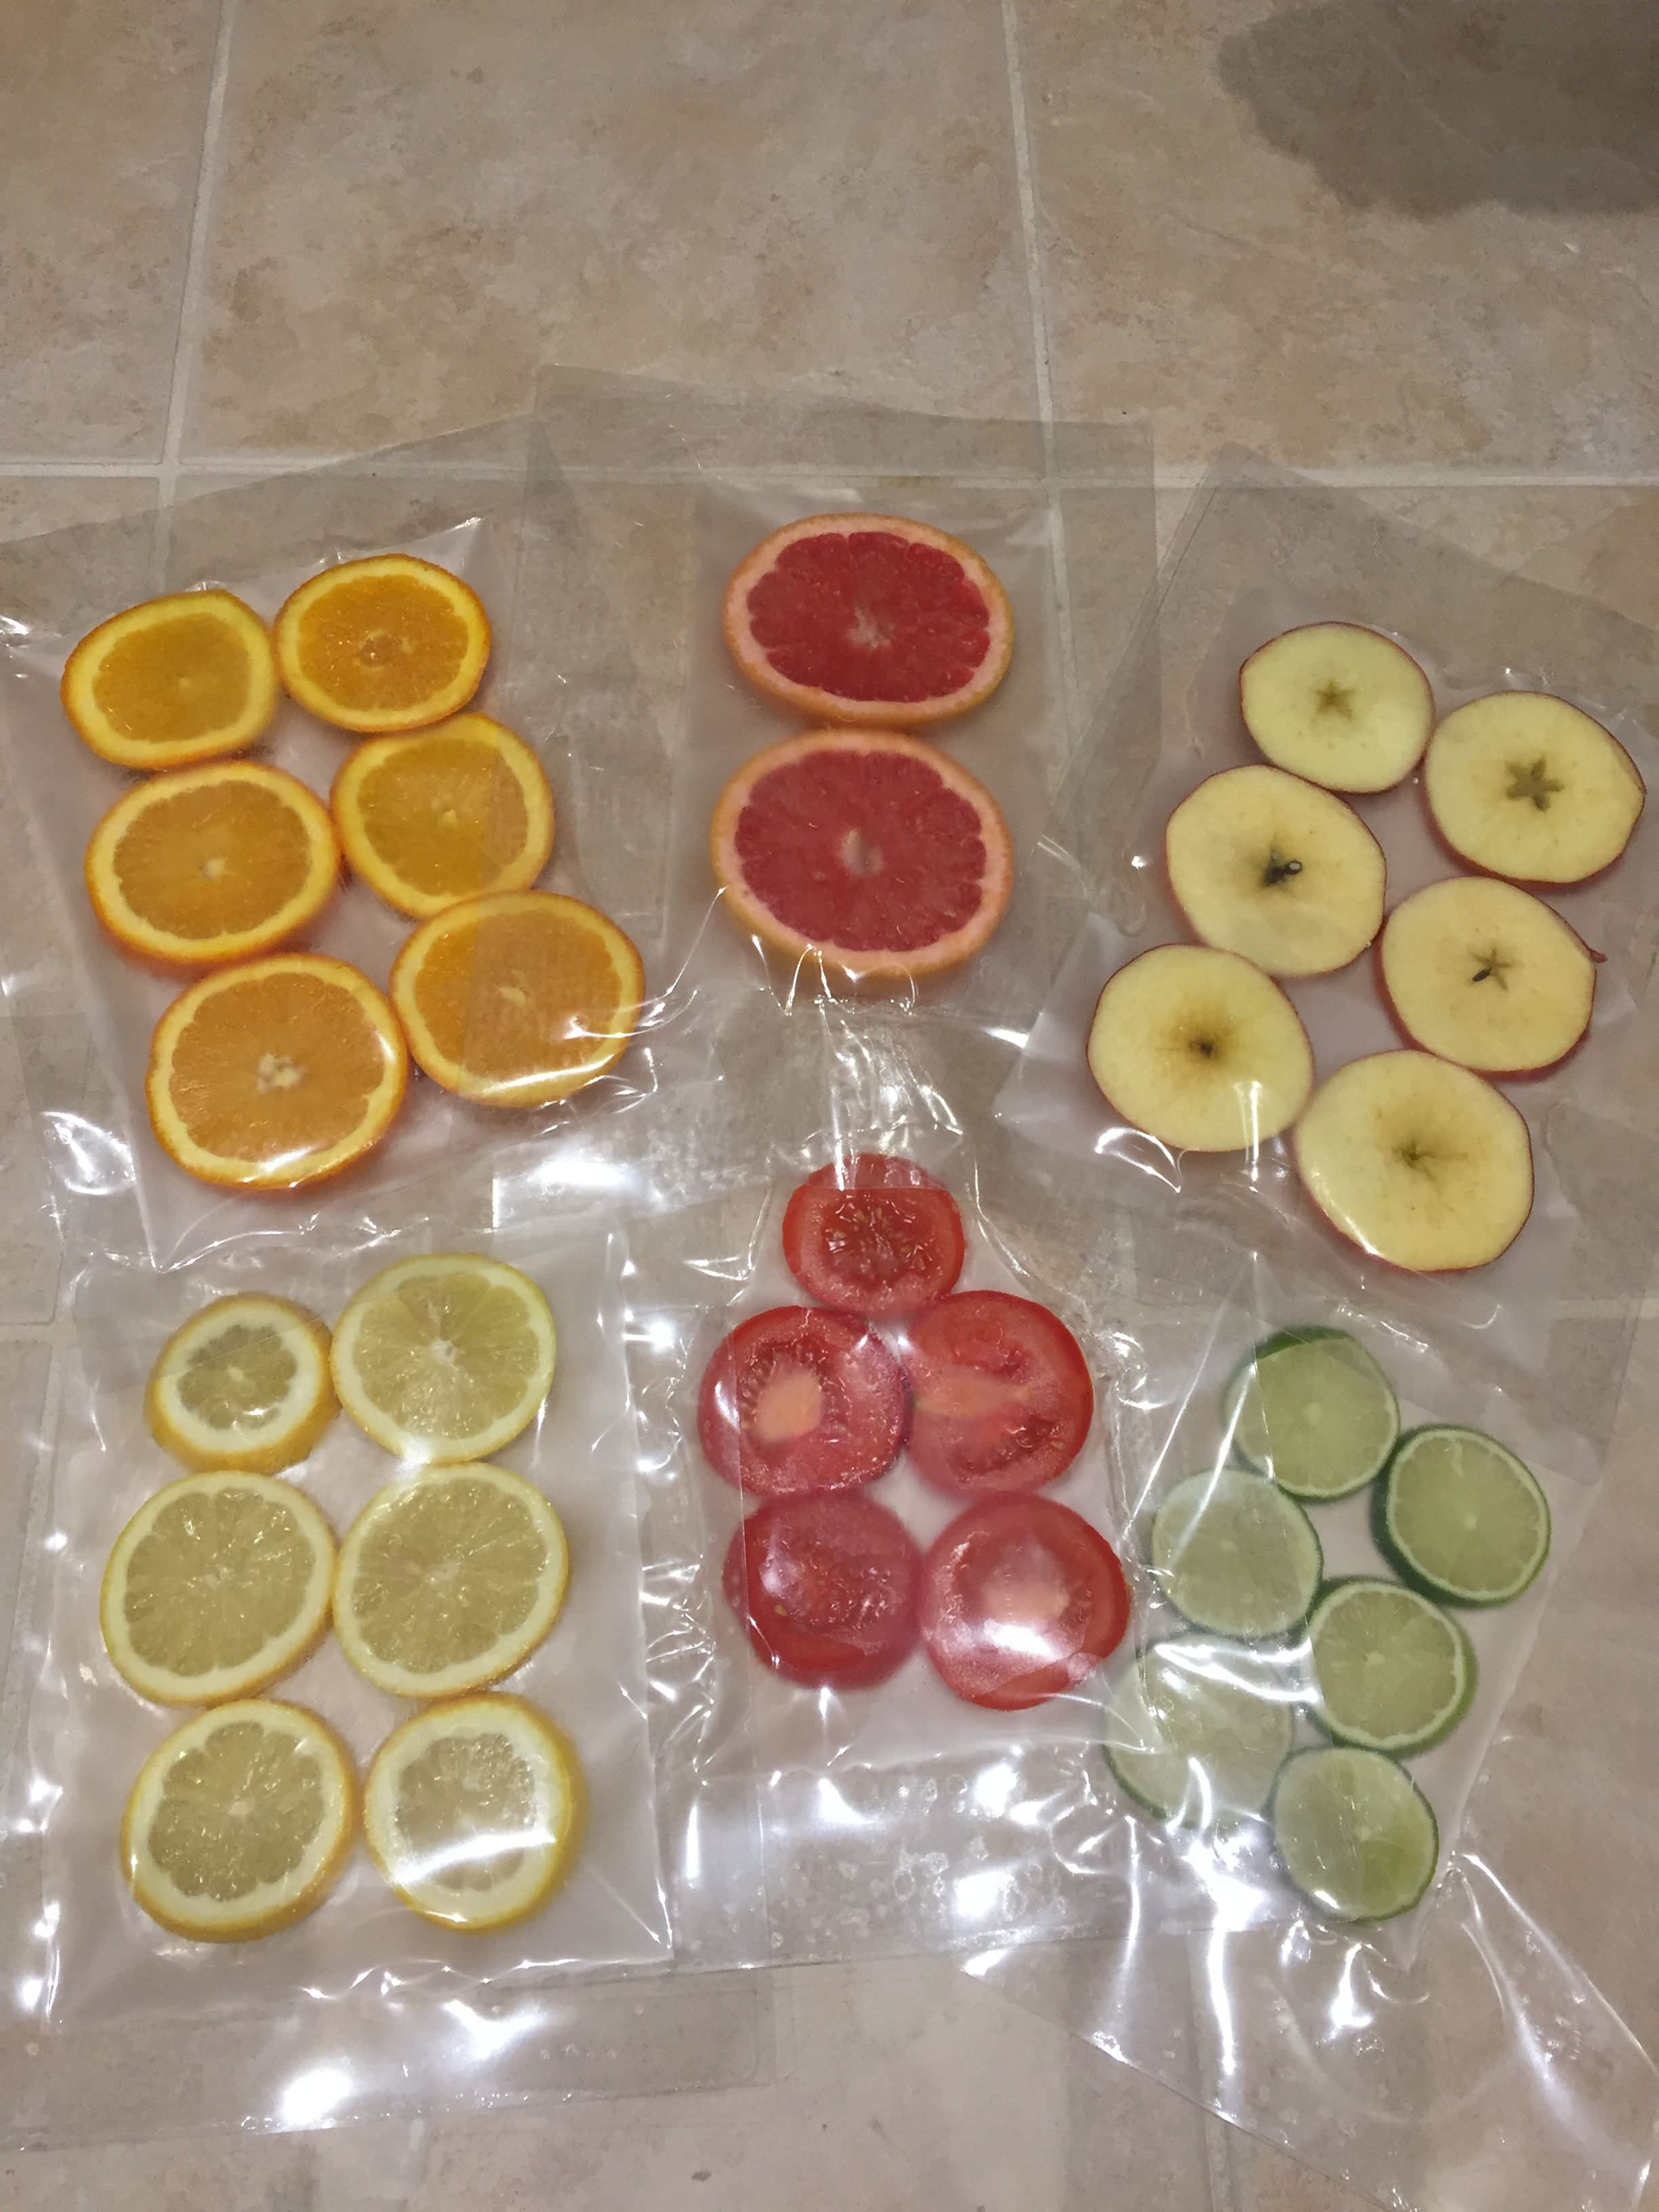 Laminated Fruit To Observe The Changes And Decay